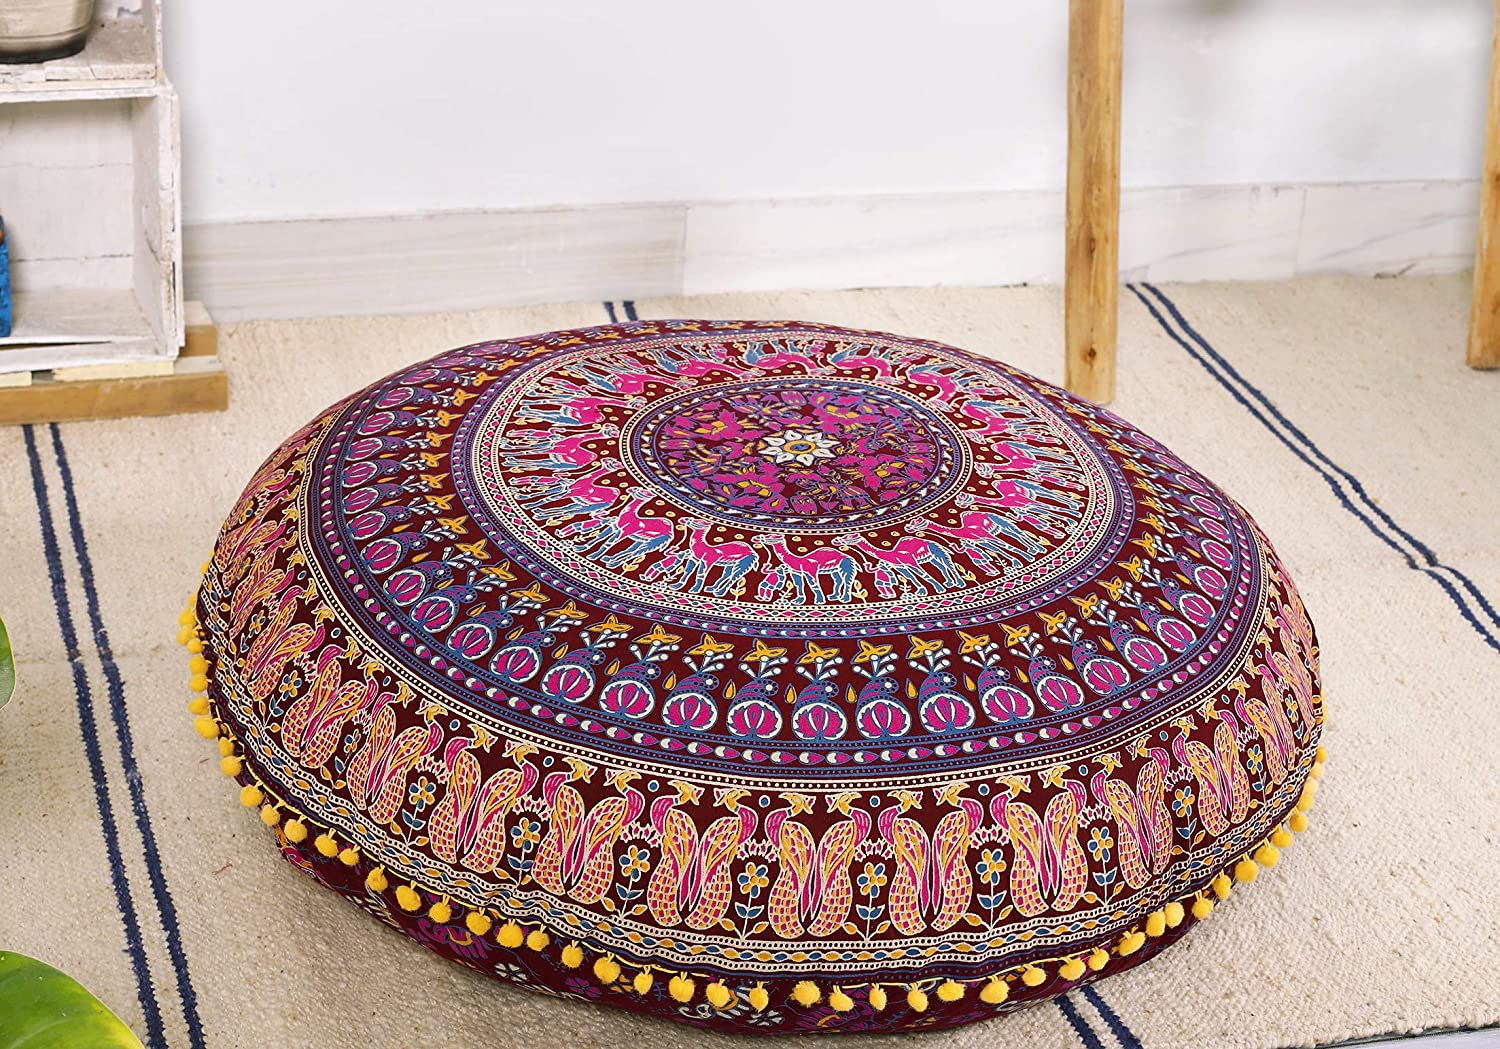 "Popular Handicrafts Large Hippie Mandala Elephant Floor Pillow Cover - Cushion Cover - Pouf Cover Round Bohemian Yoga Decor Floor Cushion Case- 32"" Maroon"